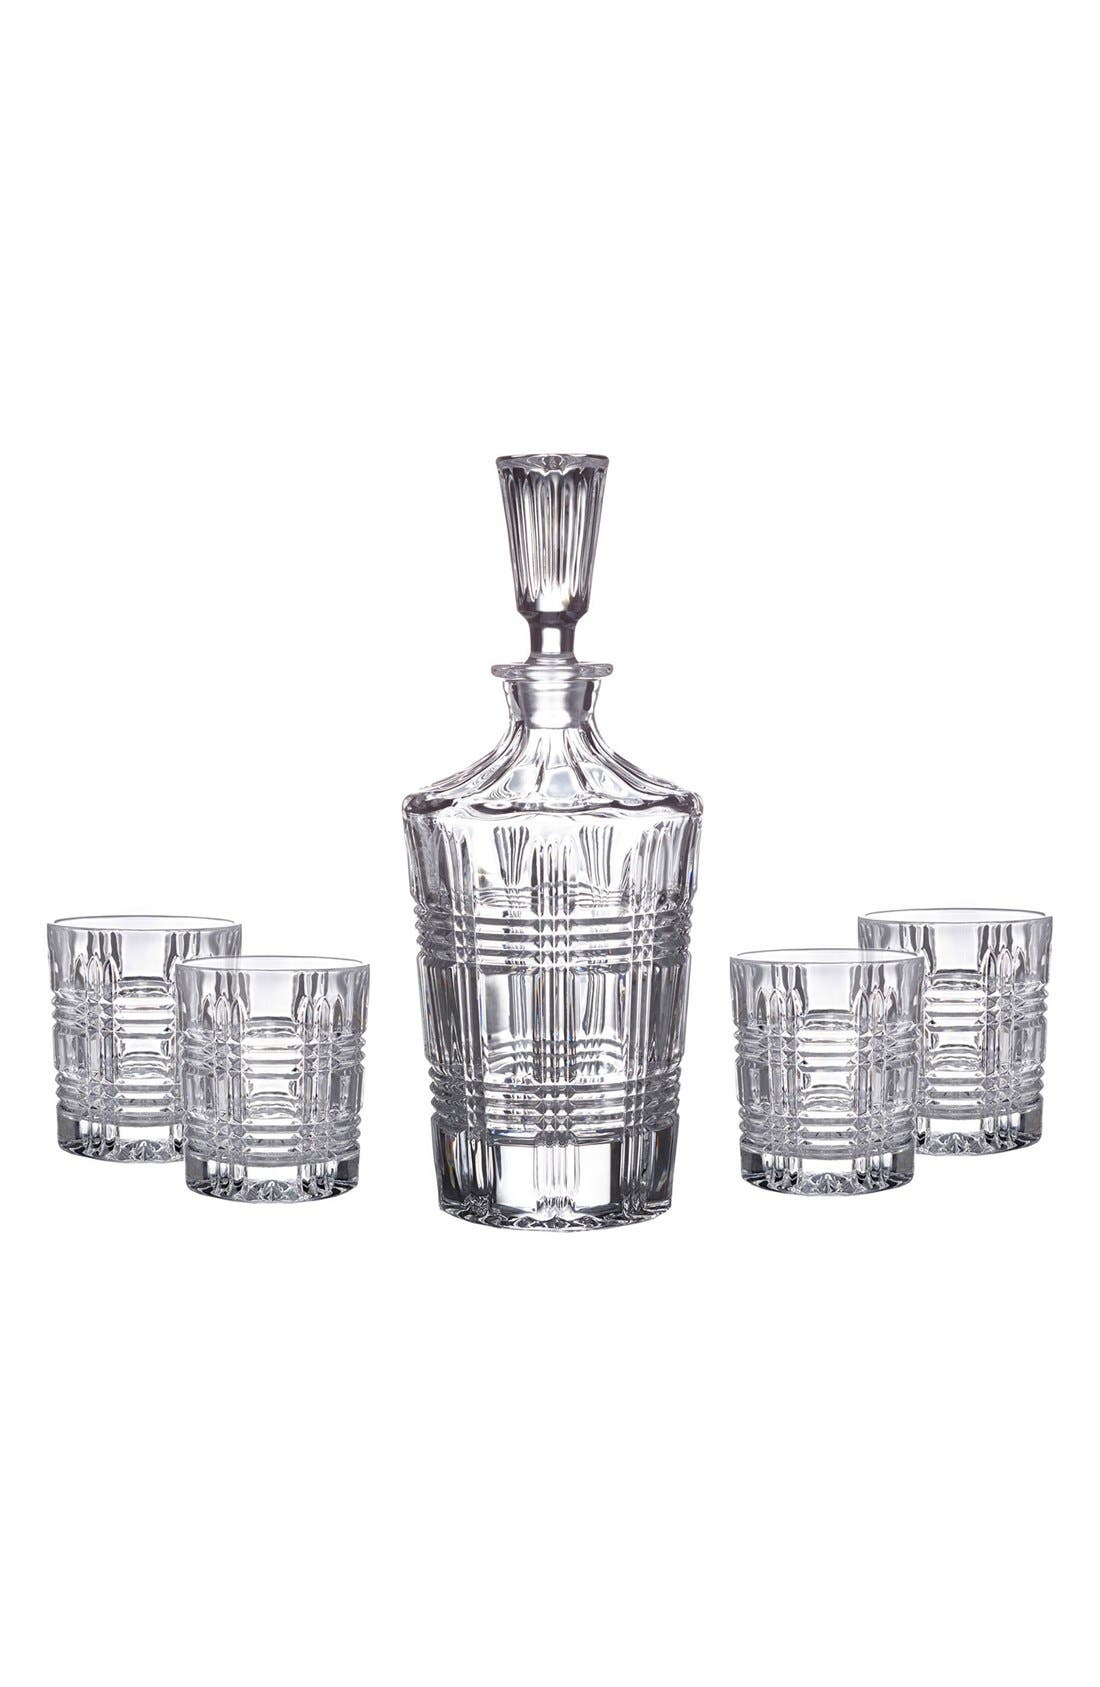 Main Image - American Atelier Bridgeport 5-Piece Decanter Set